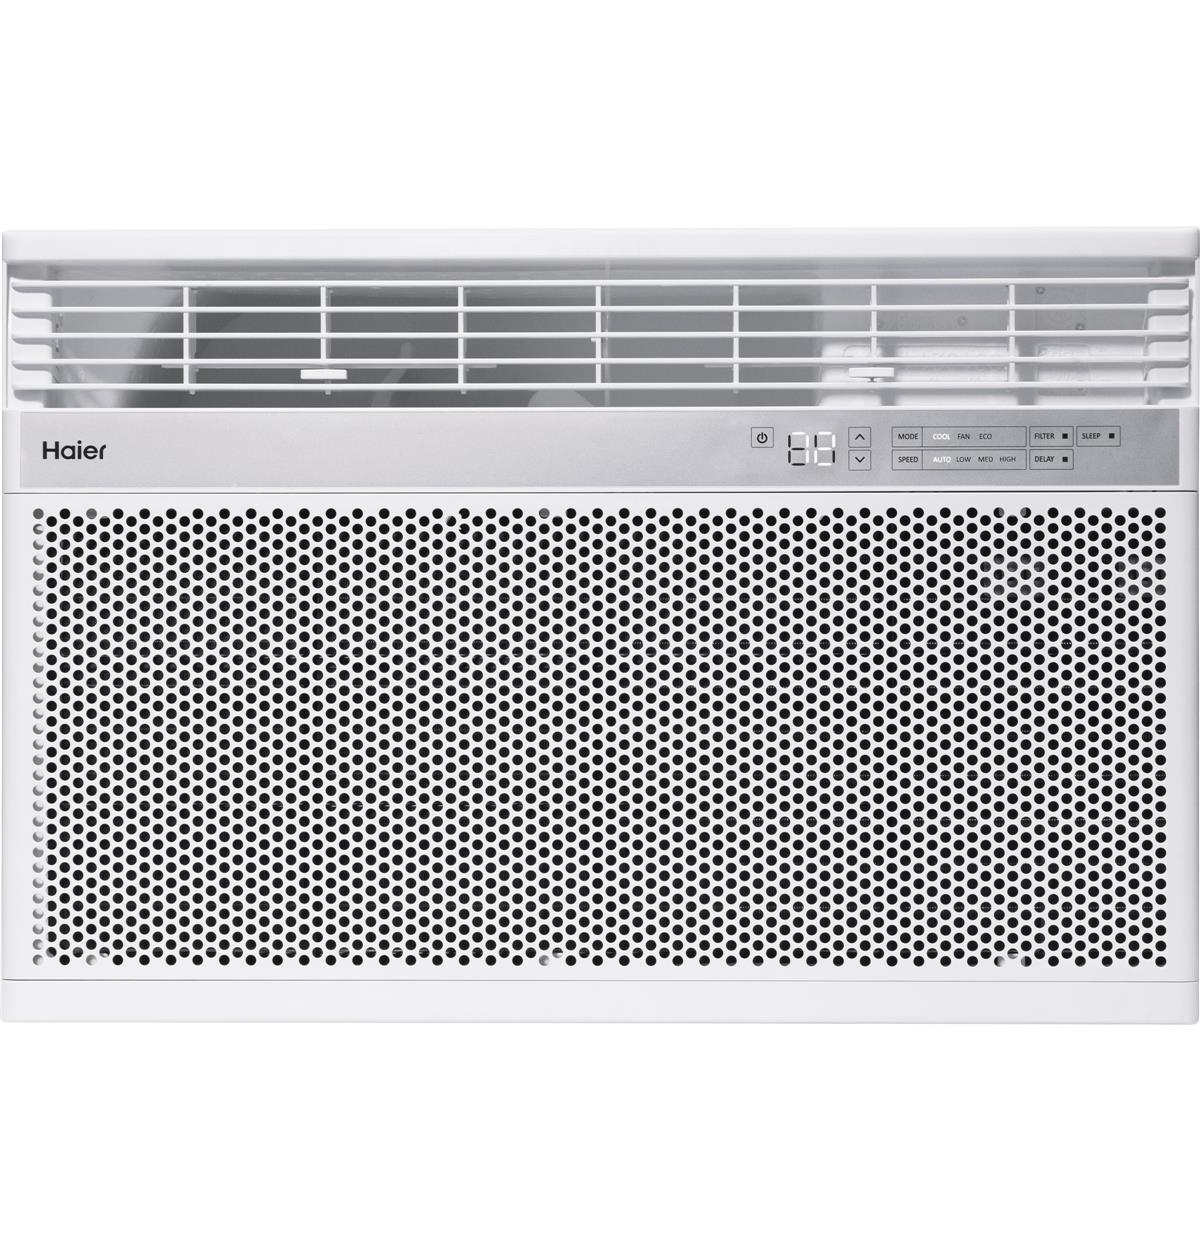 Haier Air Conditioners Ductless Portable Window Unit Through Hvac Duct Drawing Free Images View Qhm24dx Details